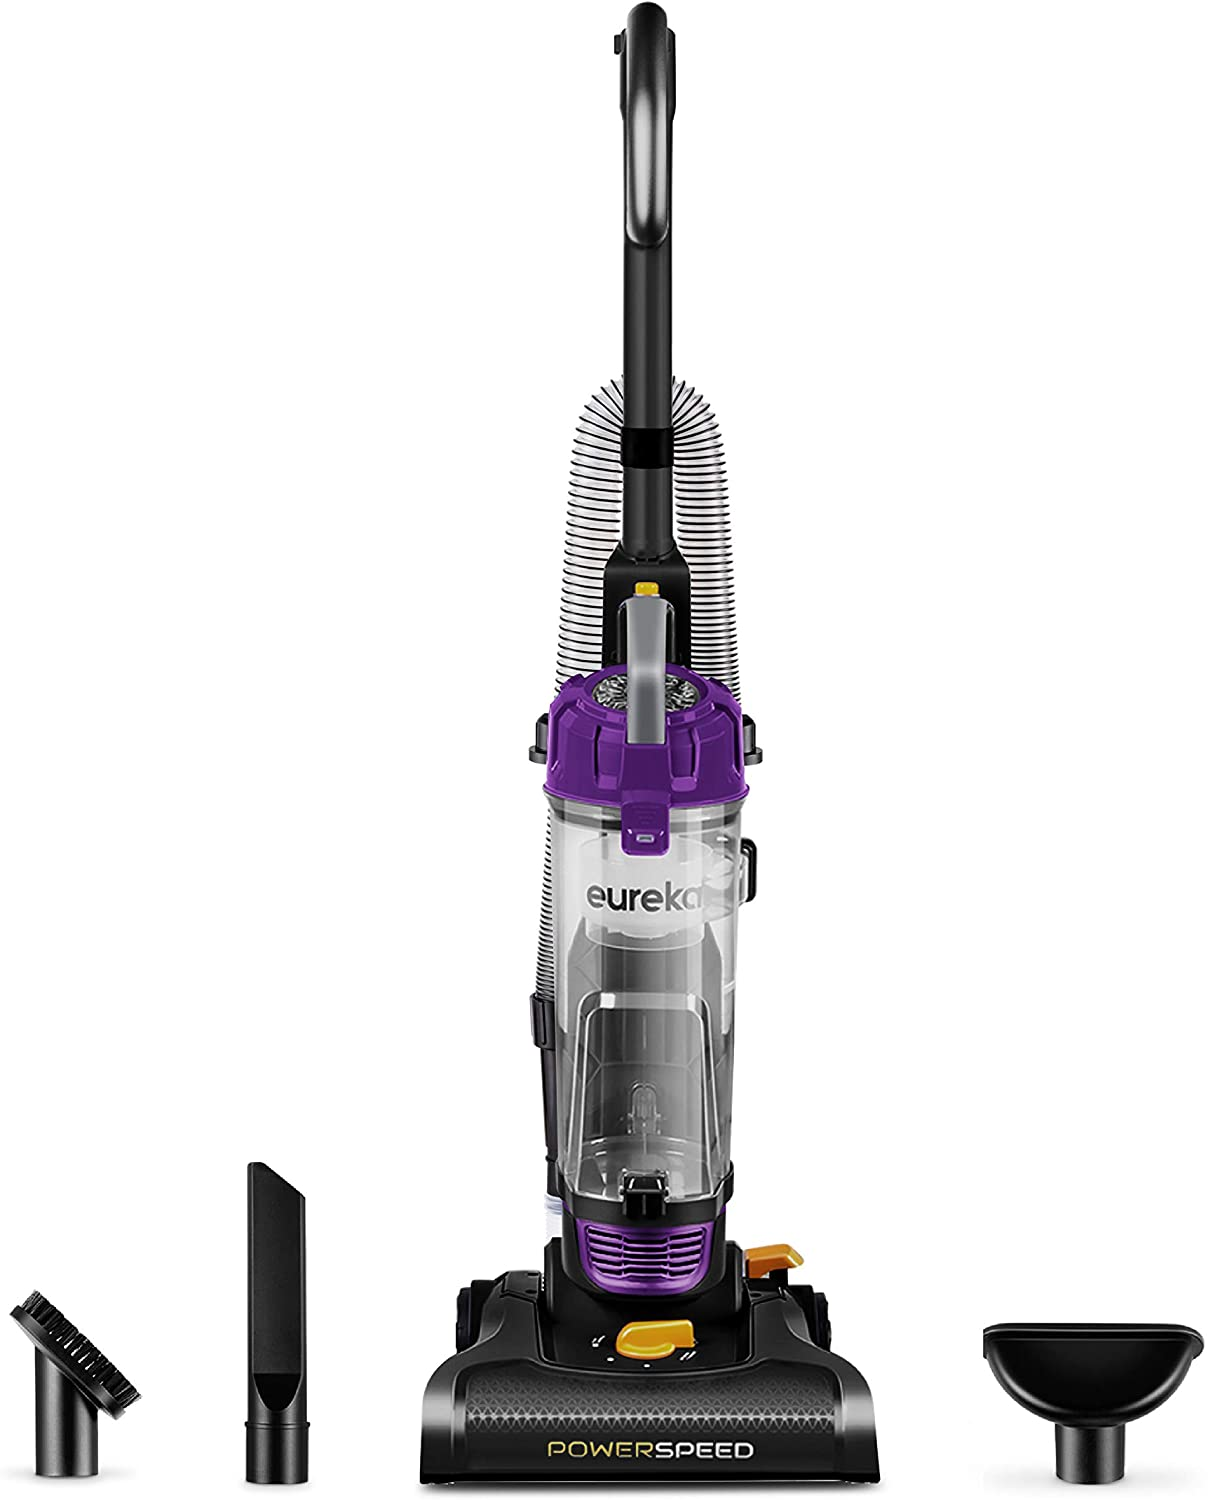 vacuum cleaners under $100